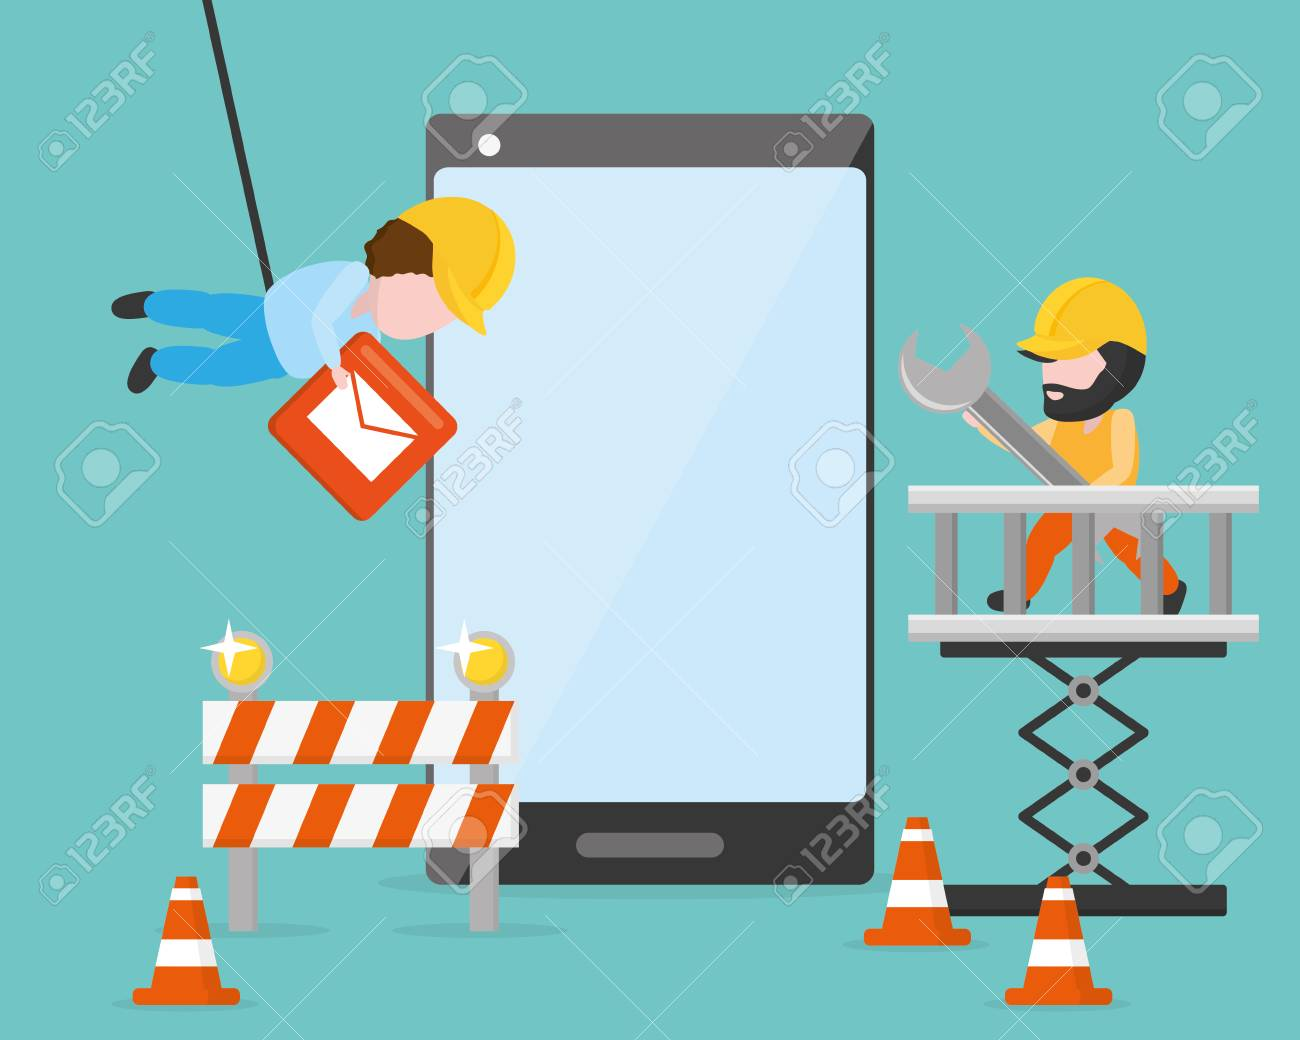 workers put button tools mobile app development - 116943818